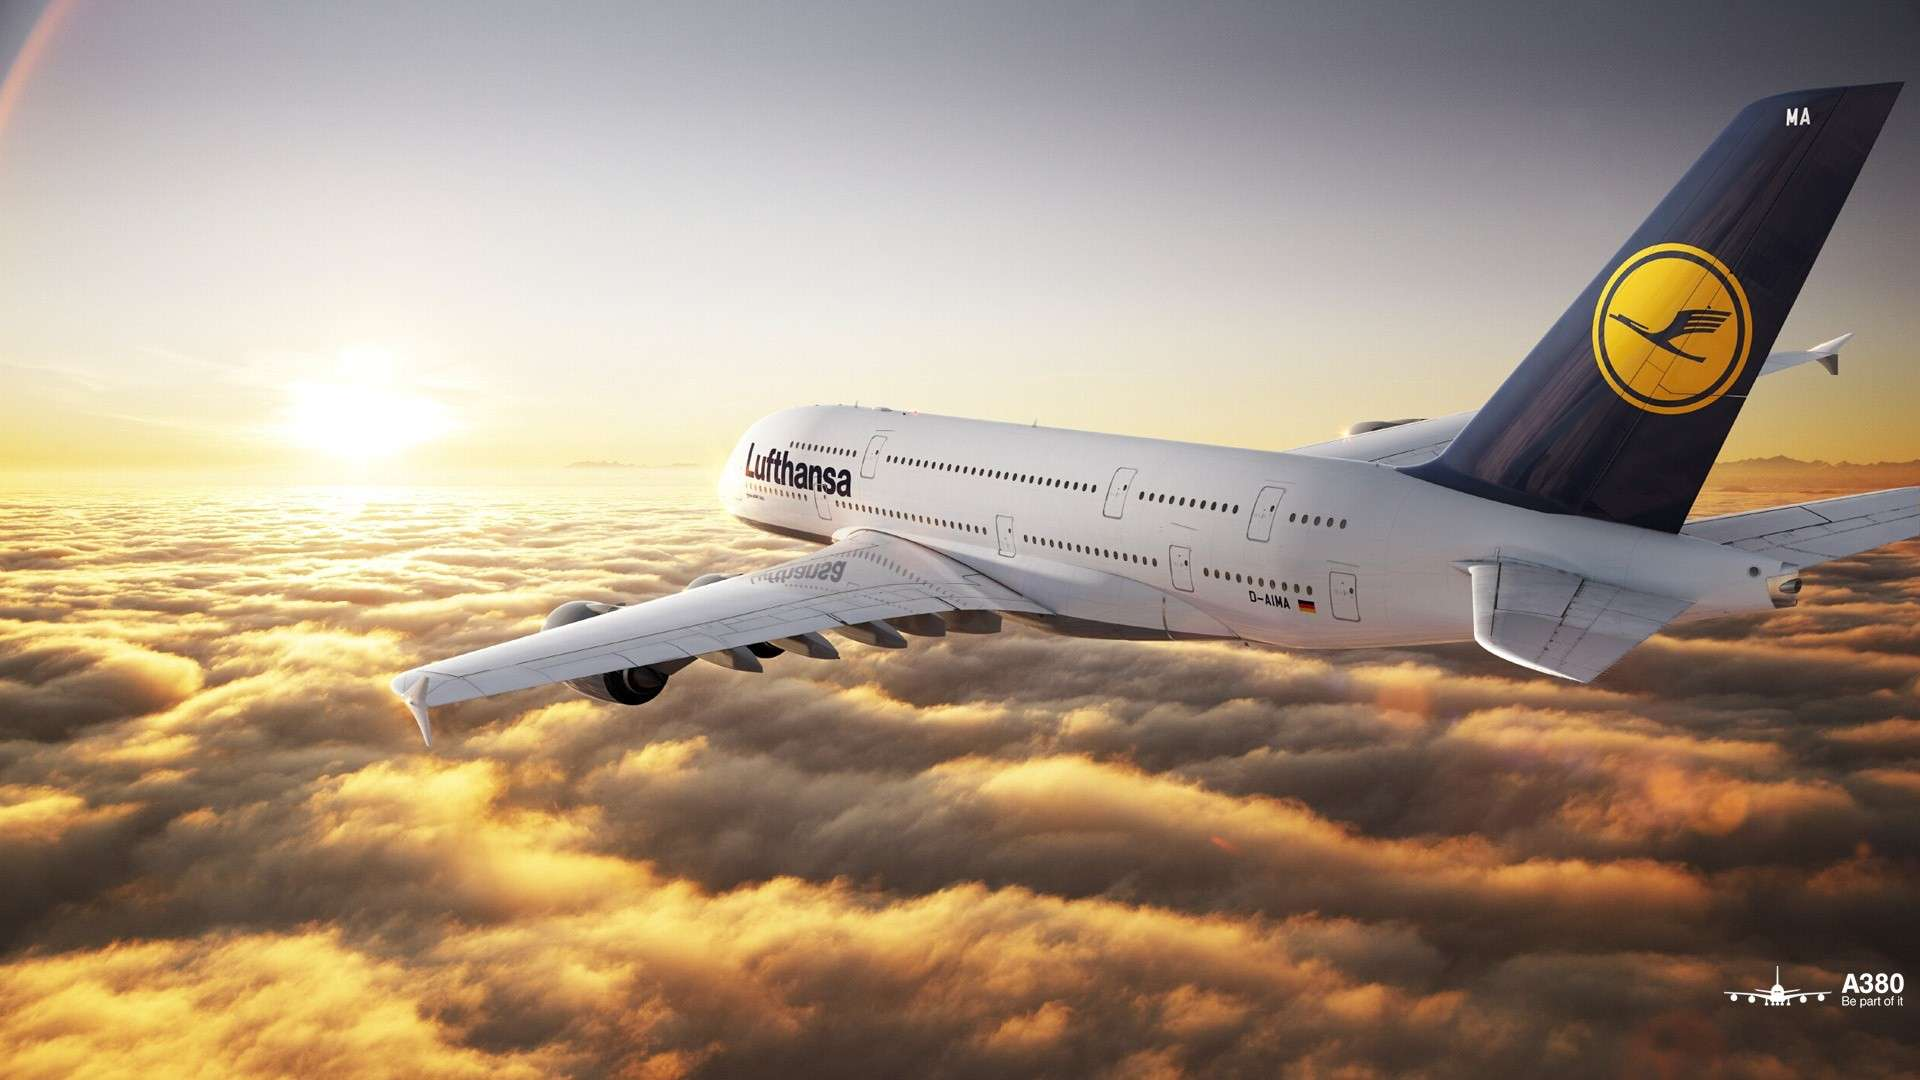 Airbus A380 Lufthansa Sunset HD Wallpaper FullHDWpp   Full HD 1920x1080